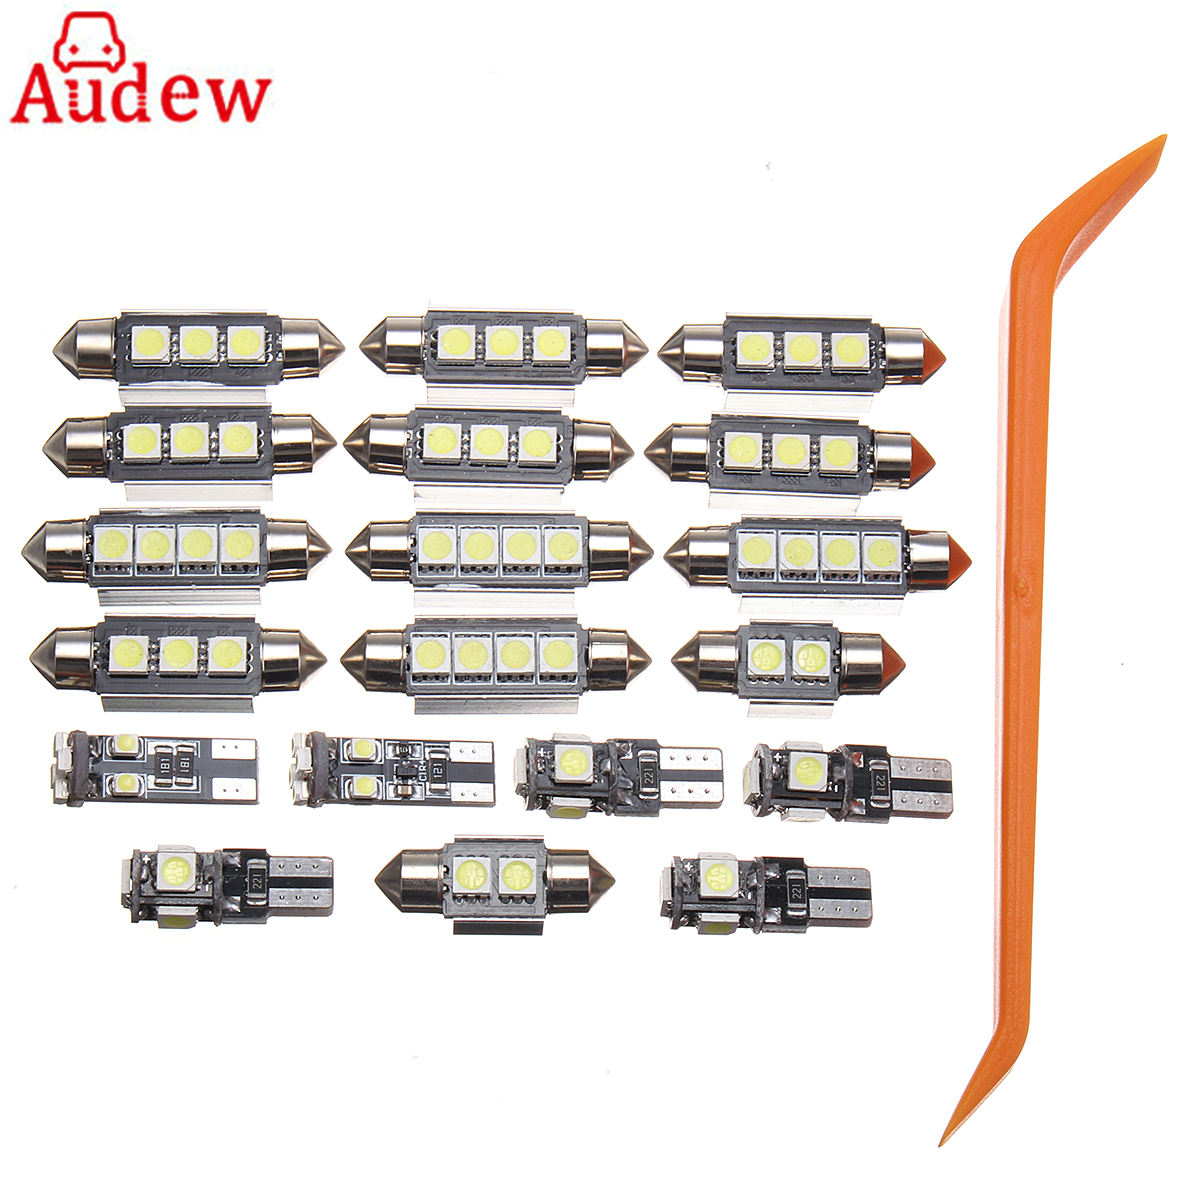 20 pcs white car led lamp interior led light kit with tool for vw passat b5 1997 2000 in signal. Black Bedroom Furniture Sets. Home Design Ideas